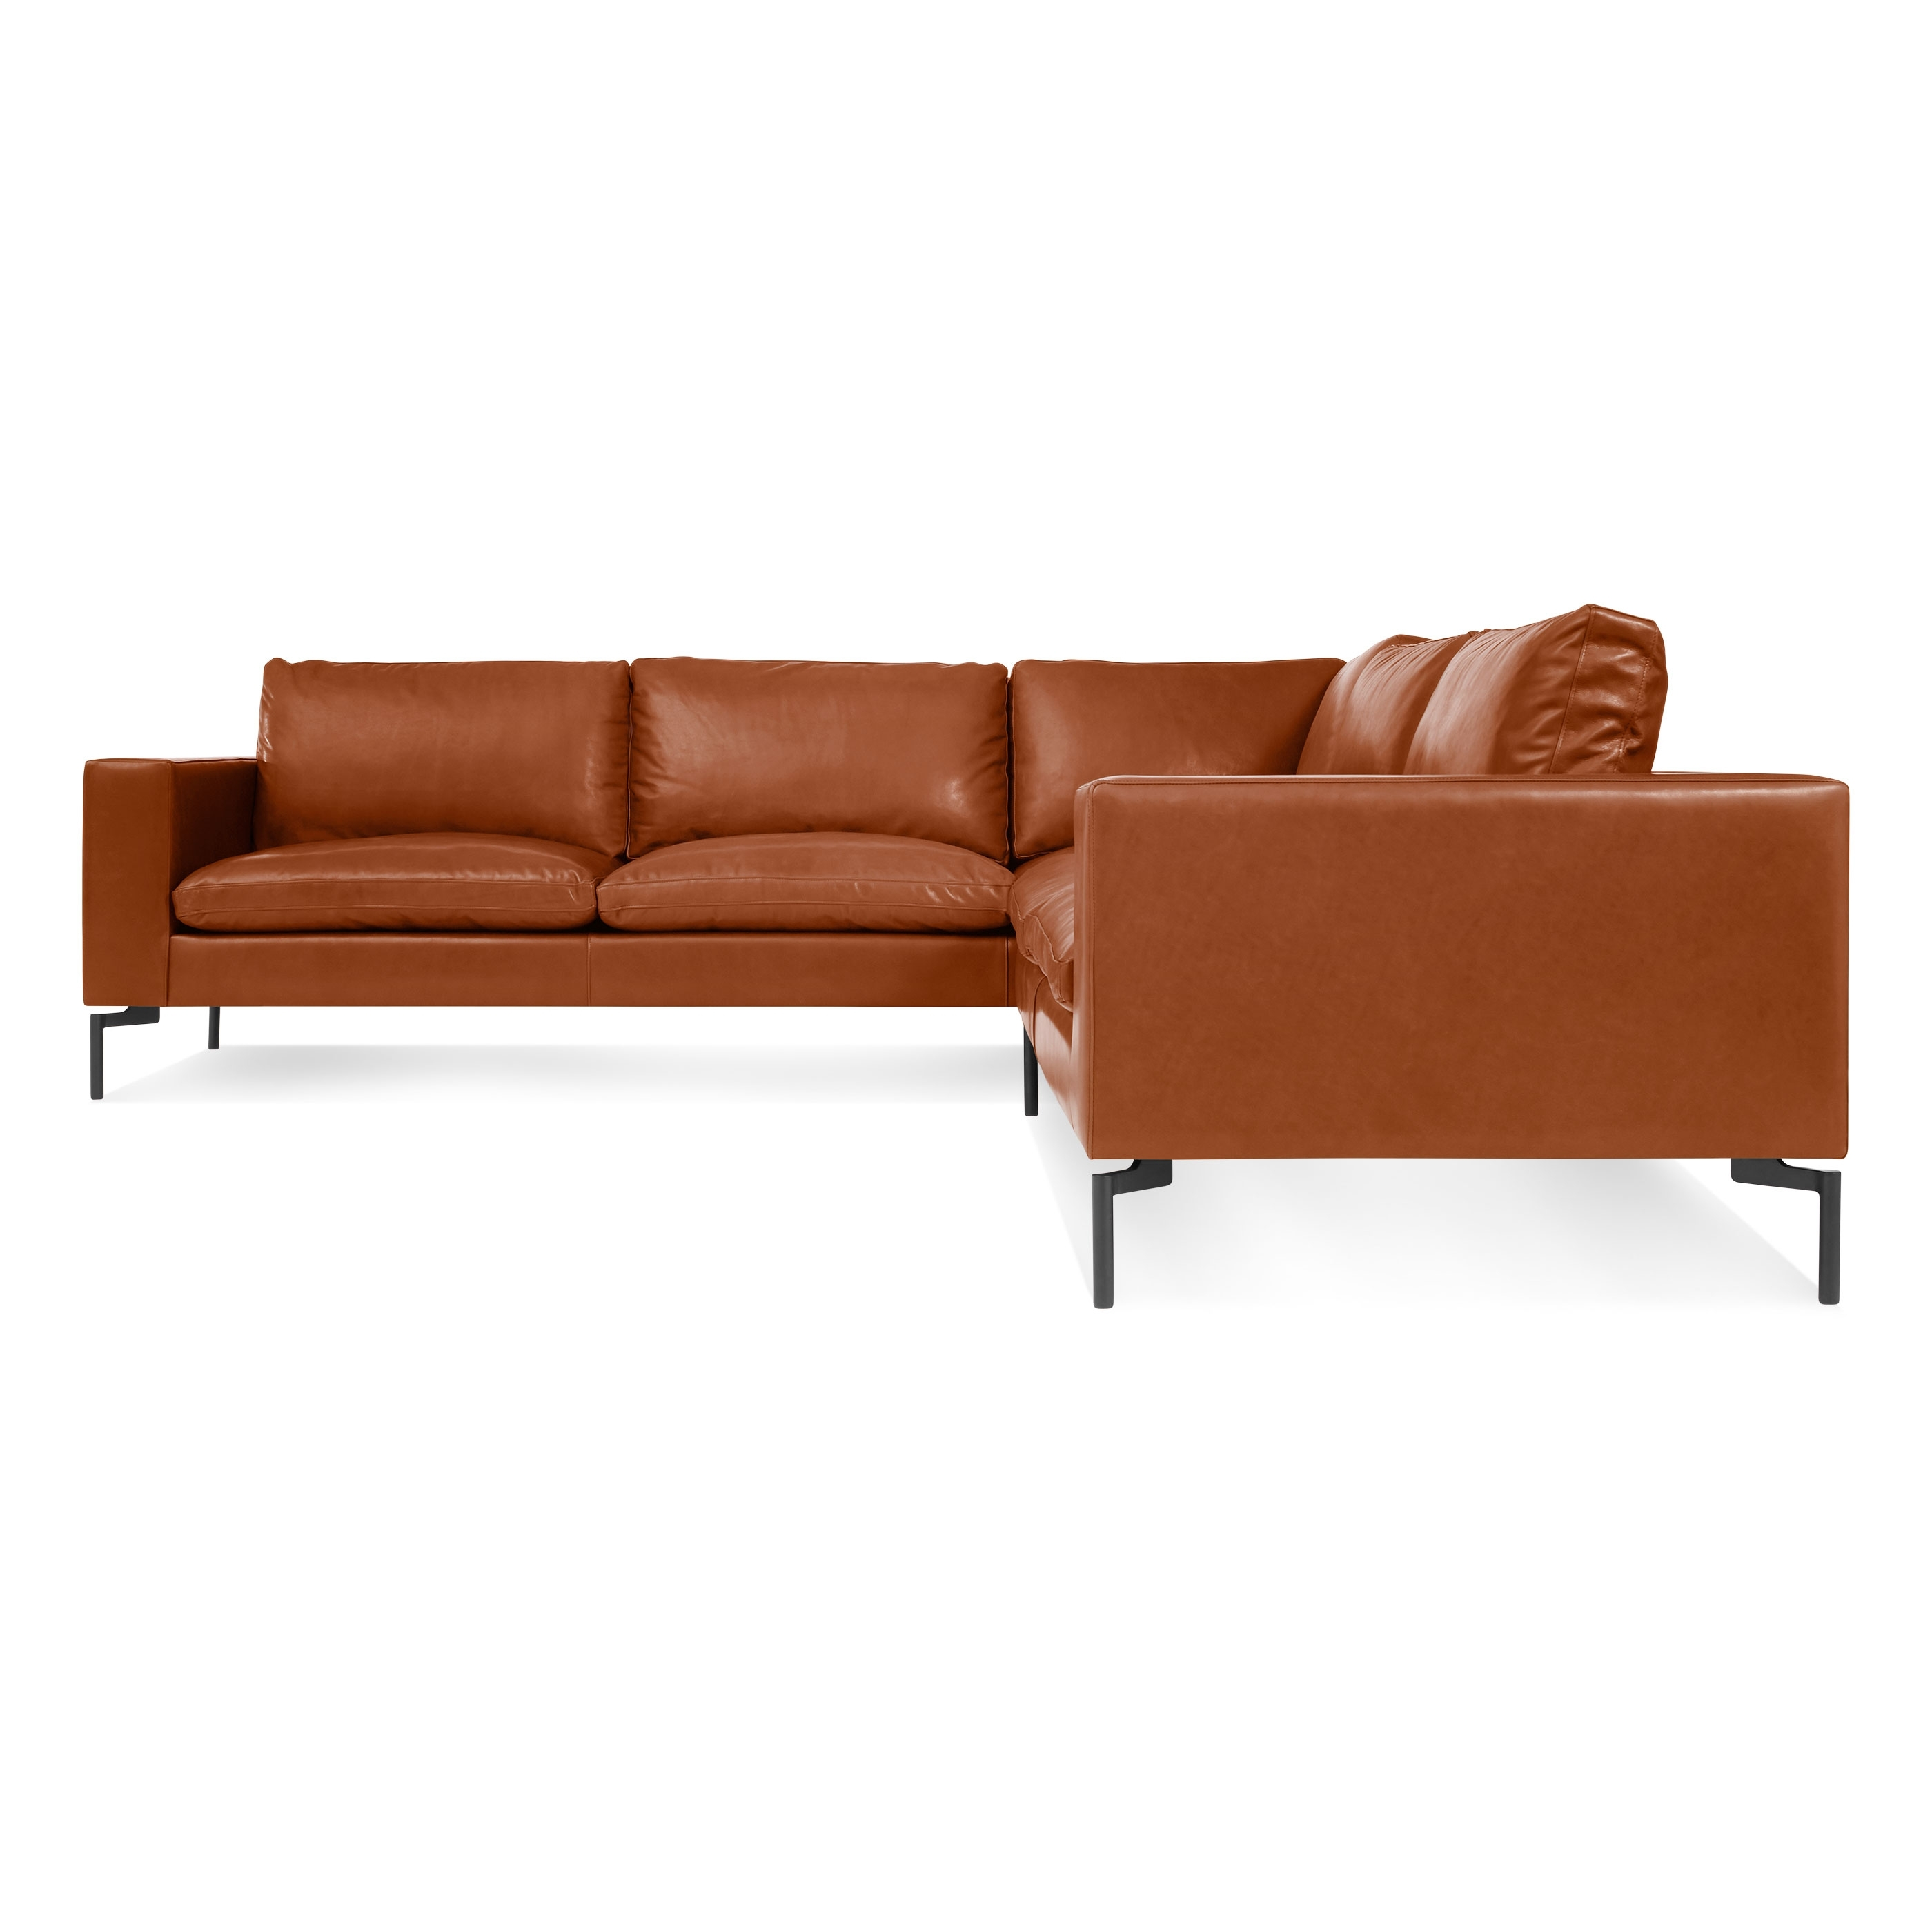 Fashionable Sectional Sofas At Bc Canada Inside New Standard Small Leather Sectional – Modern Leather Sofa (View 6 of 20)